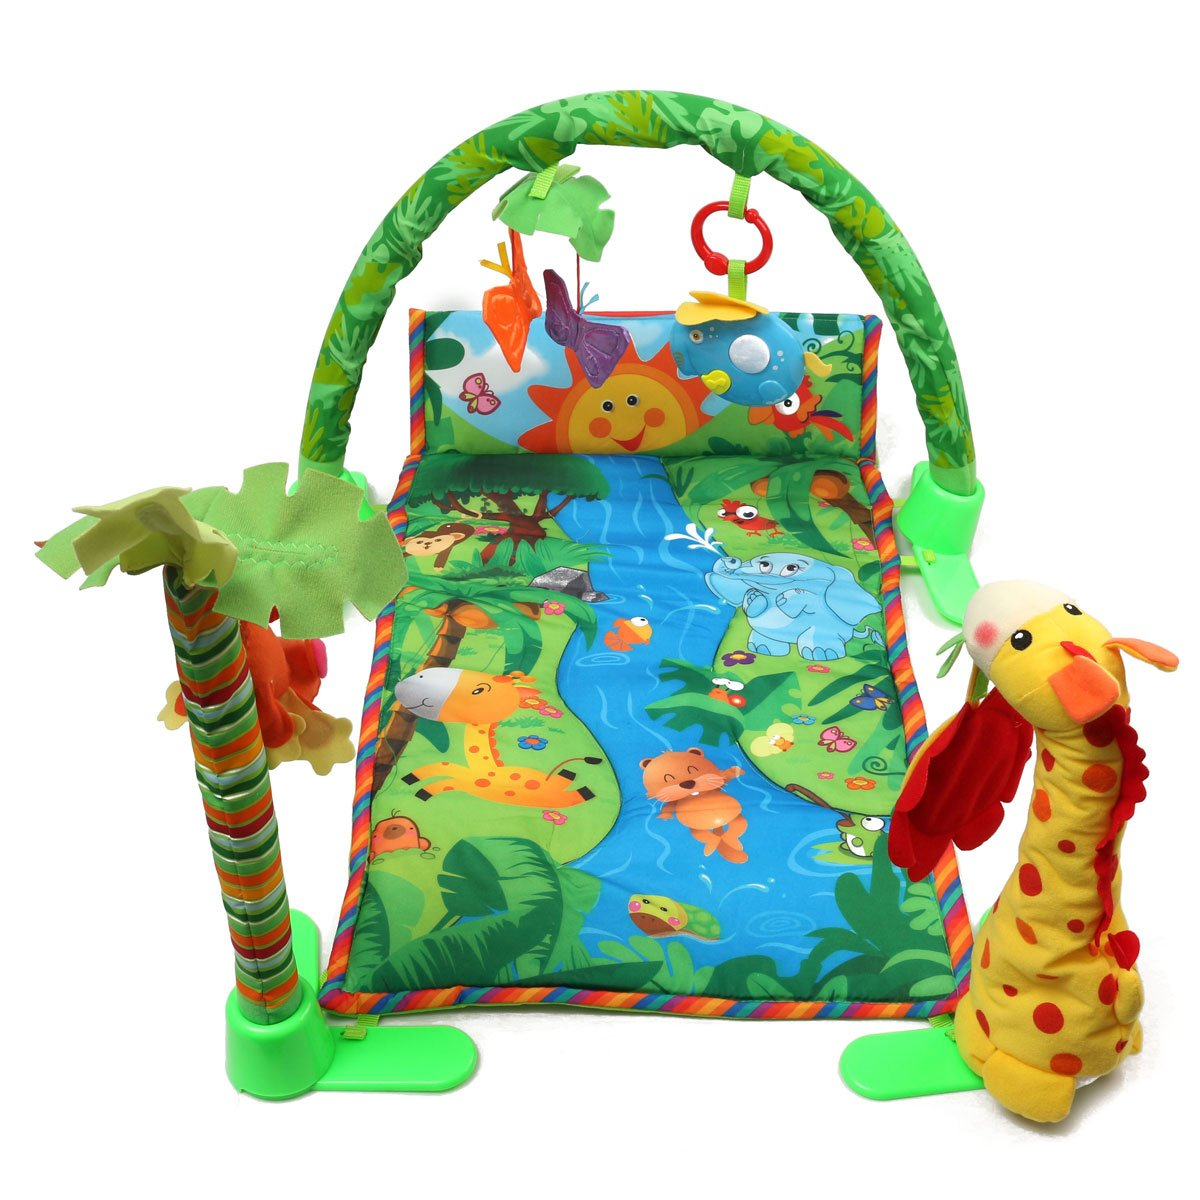 rainforest musical baby infant activity gym floor crawl play B07F5YWNS2